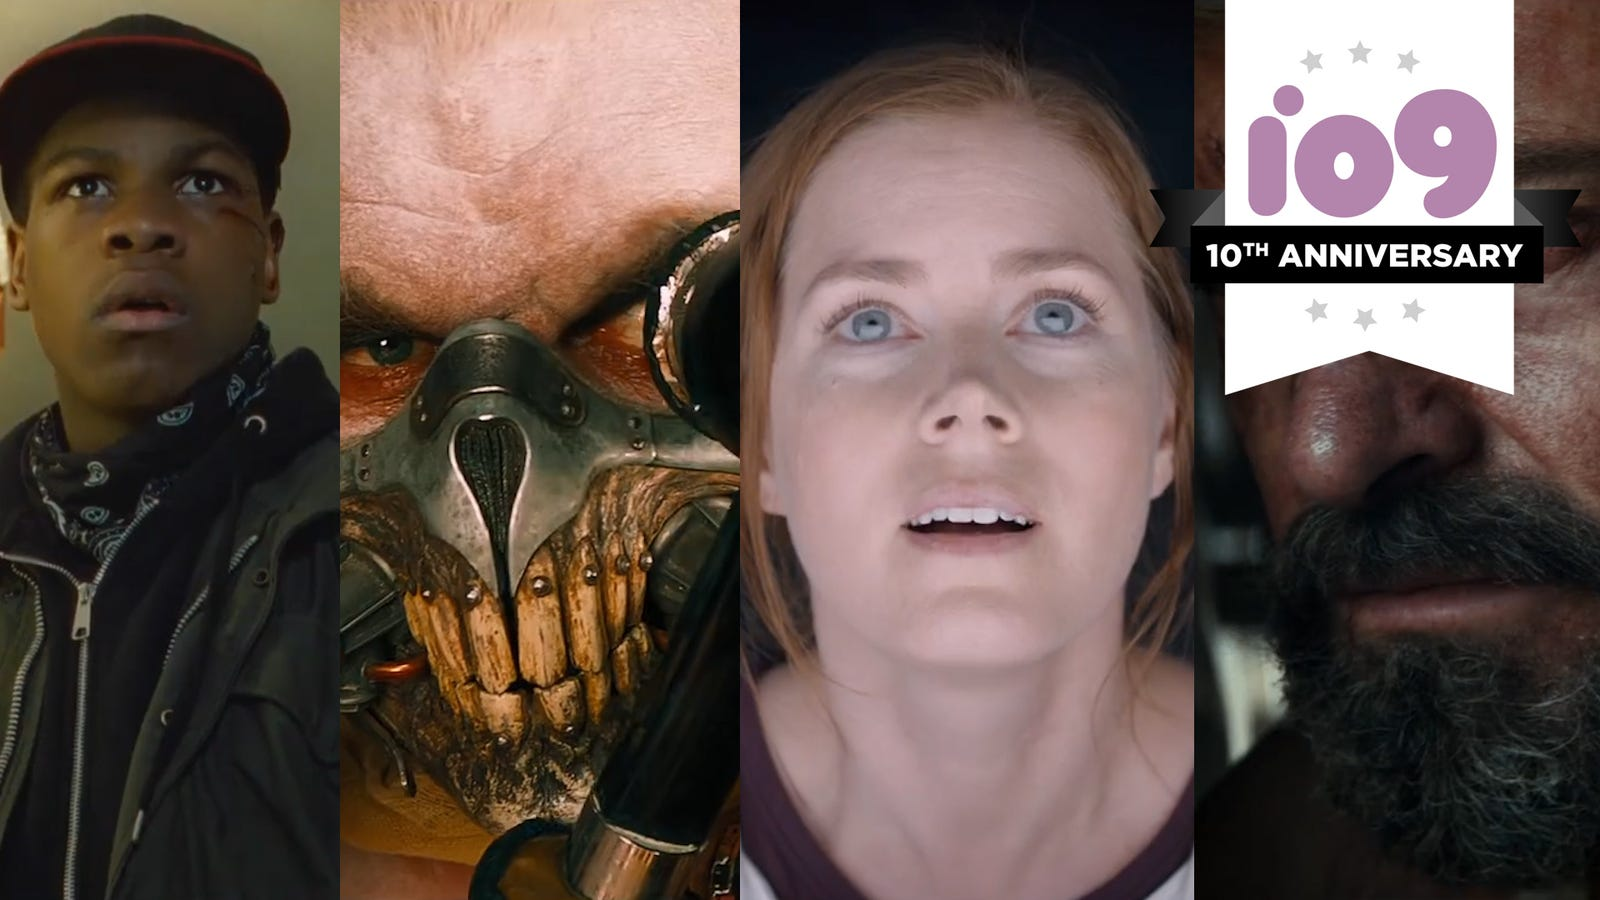 io9's Greatest Movies of the Past 10 Years